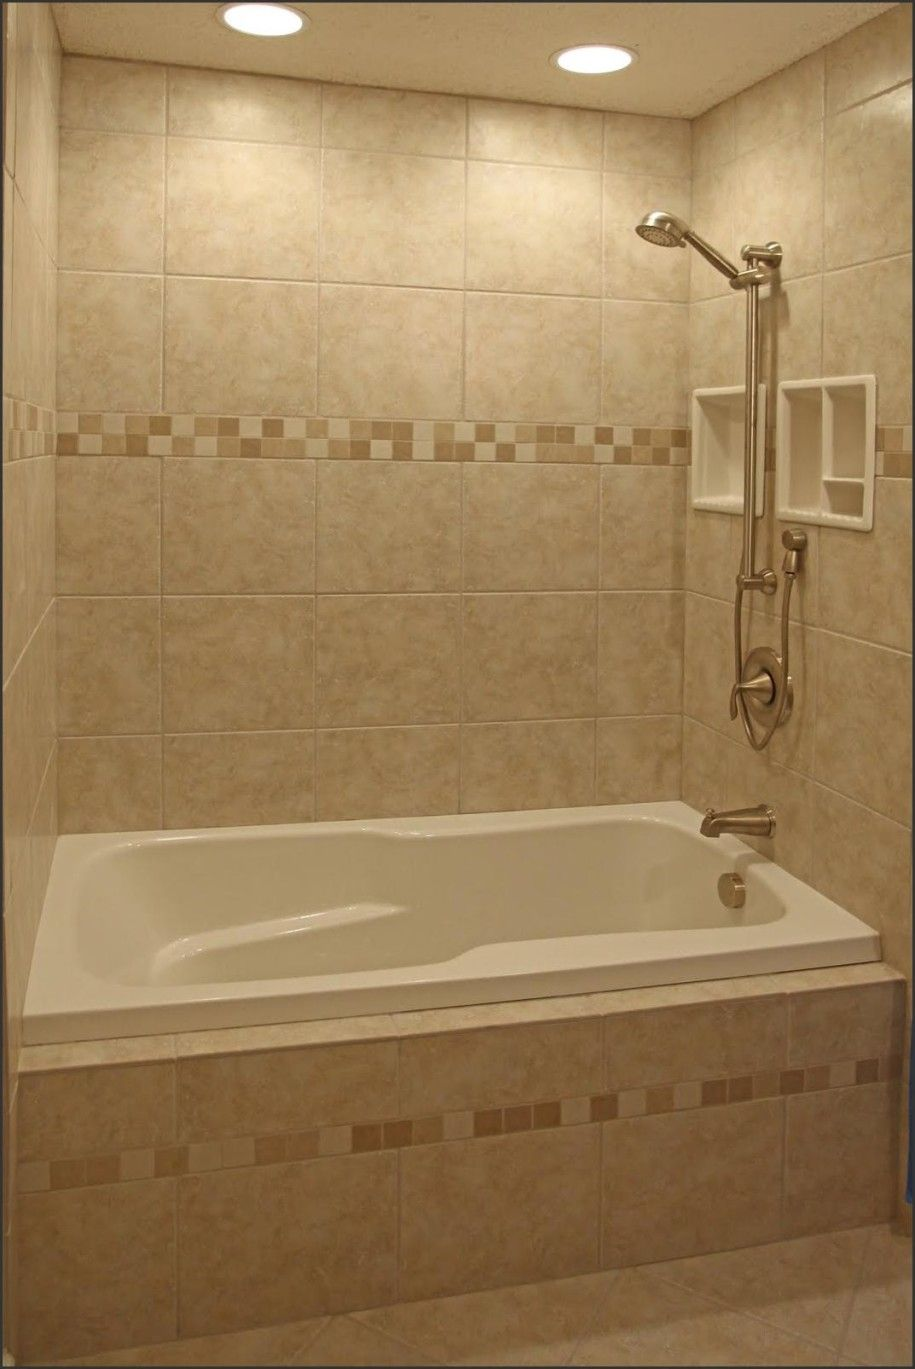 Small Bathroom With Alcove Bathtub Shower Combo And Limestone Wall Interesting Small Bathroom Ideas Pictures Tile Inspiration Design